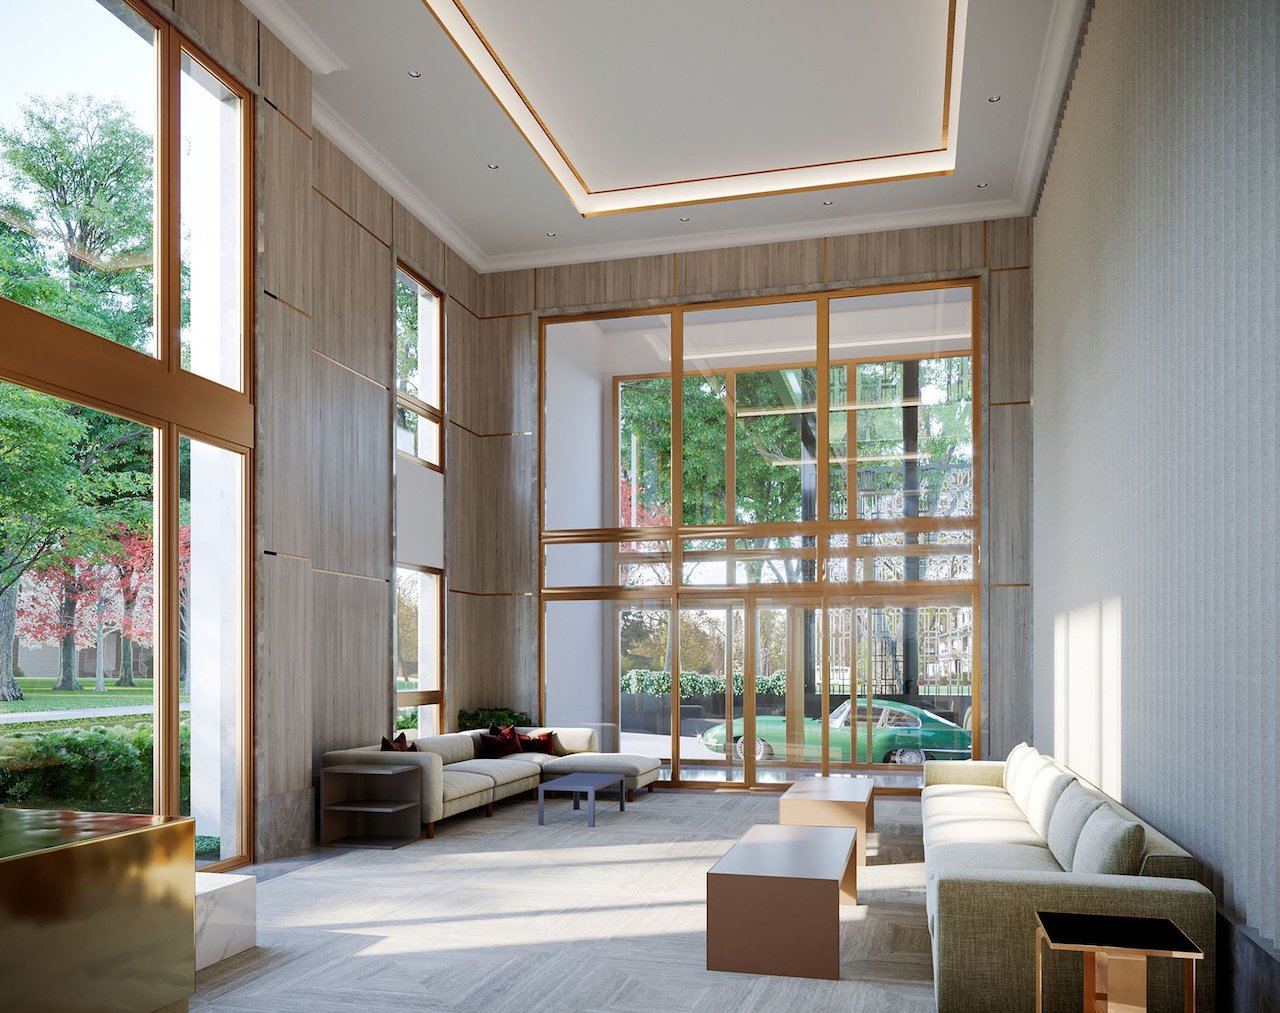 Lobby rendering of One Forest Hill Condos.